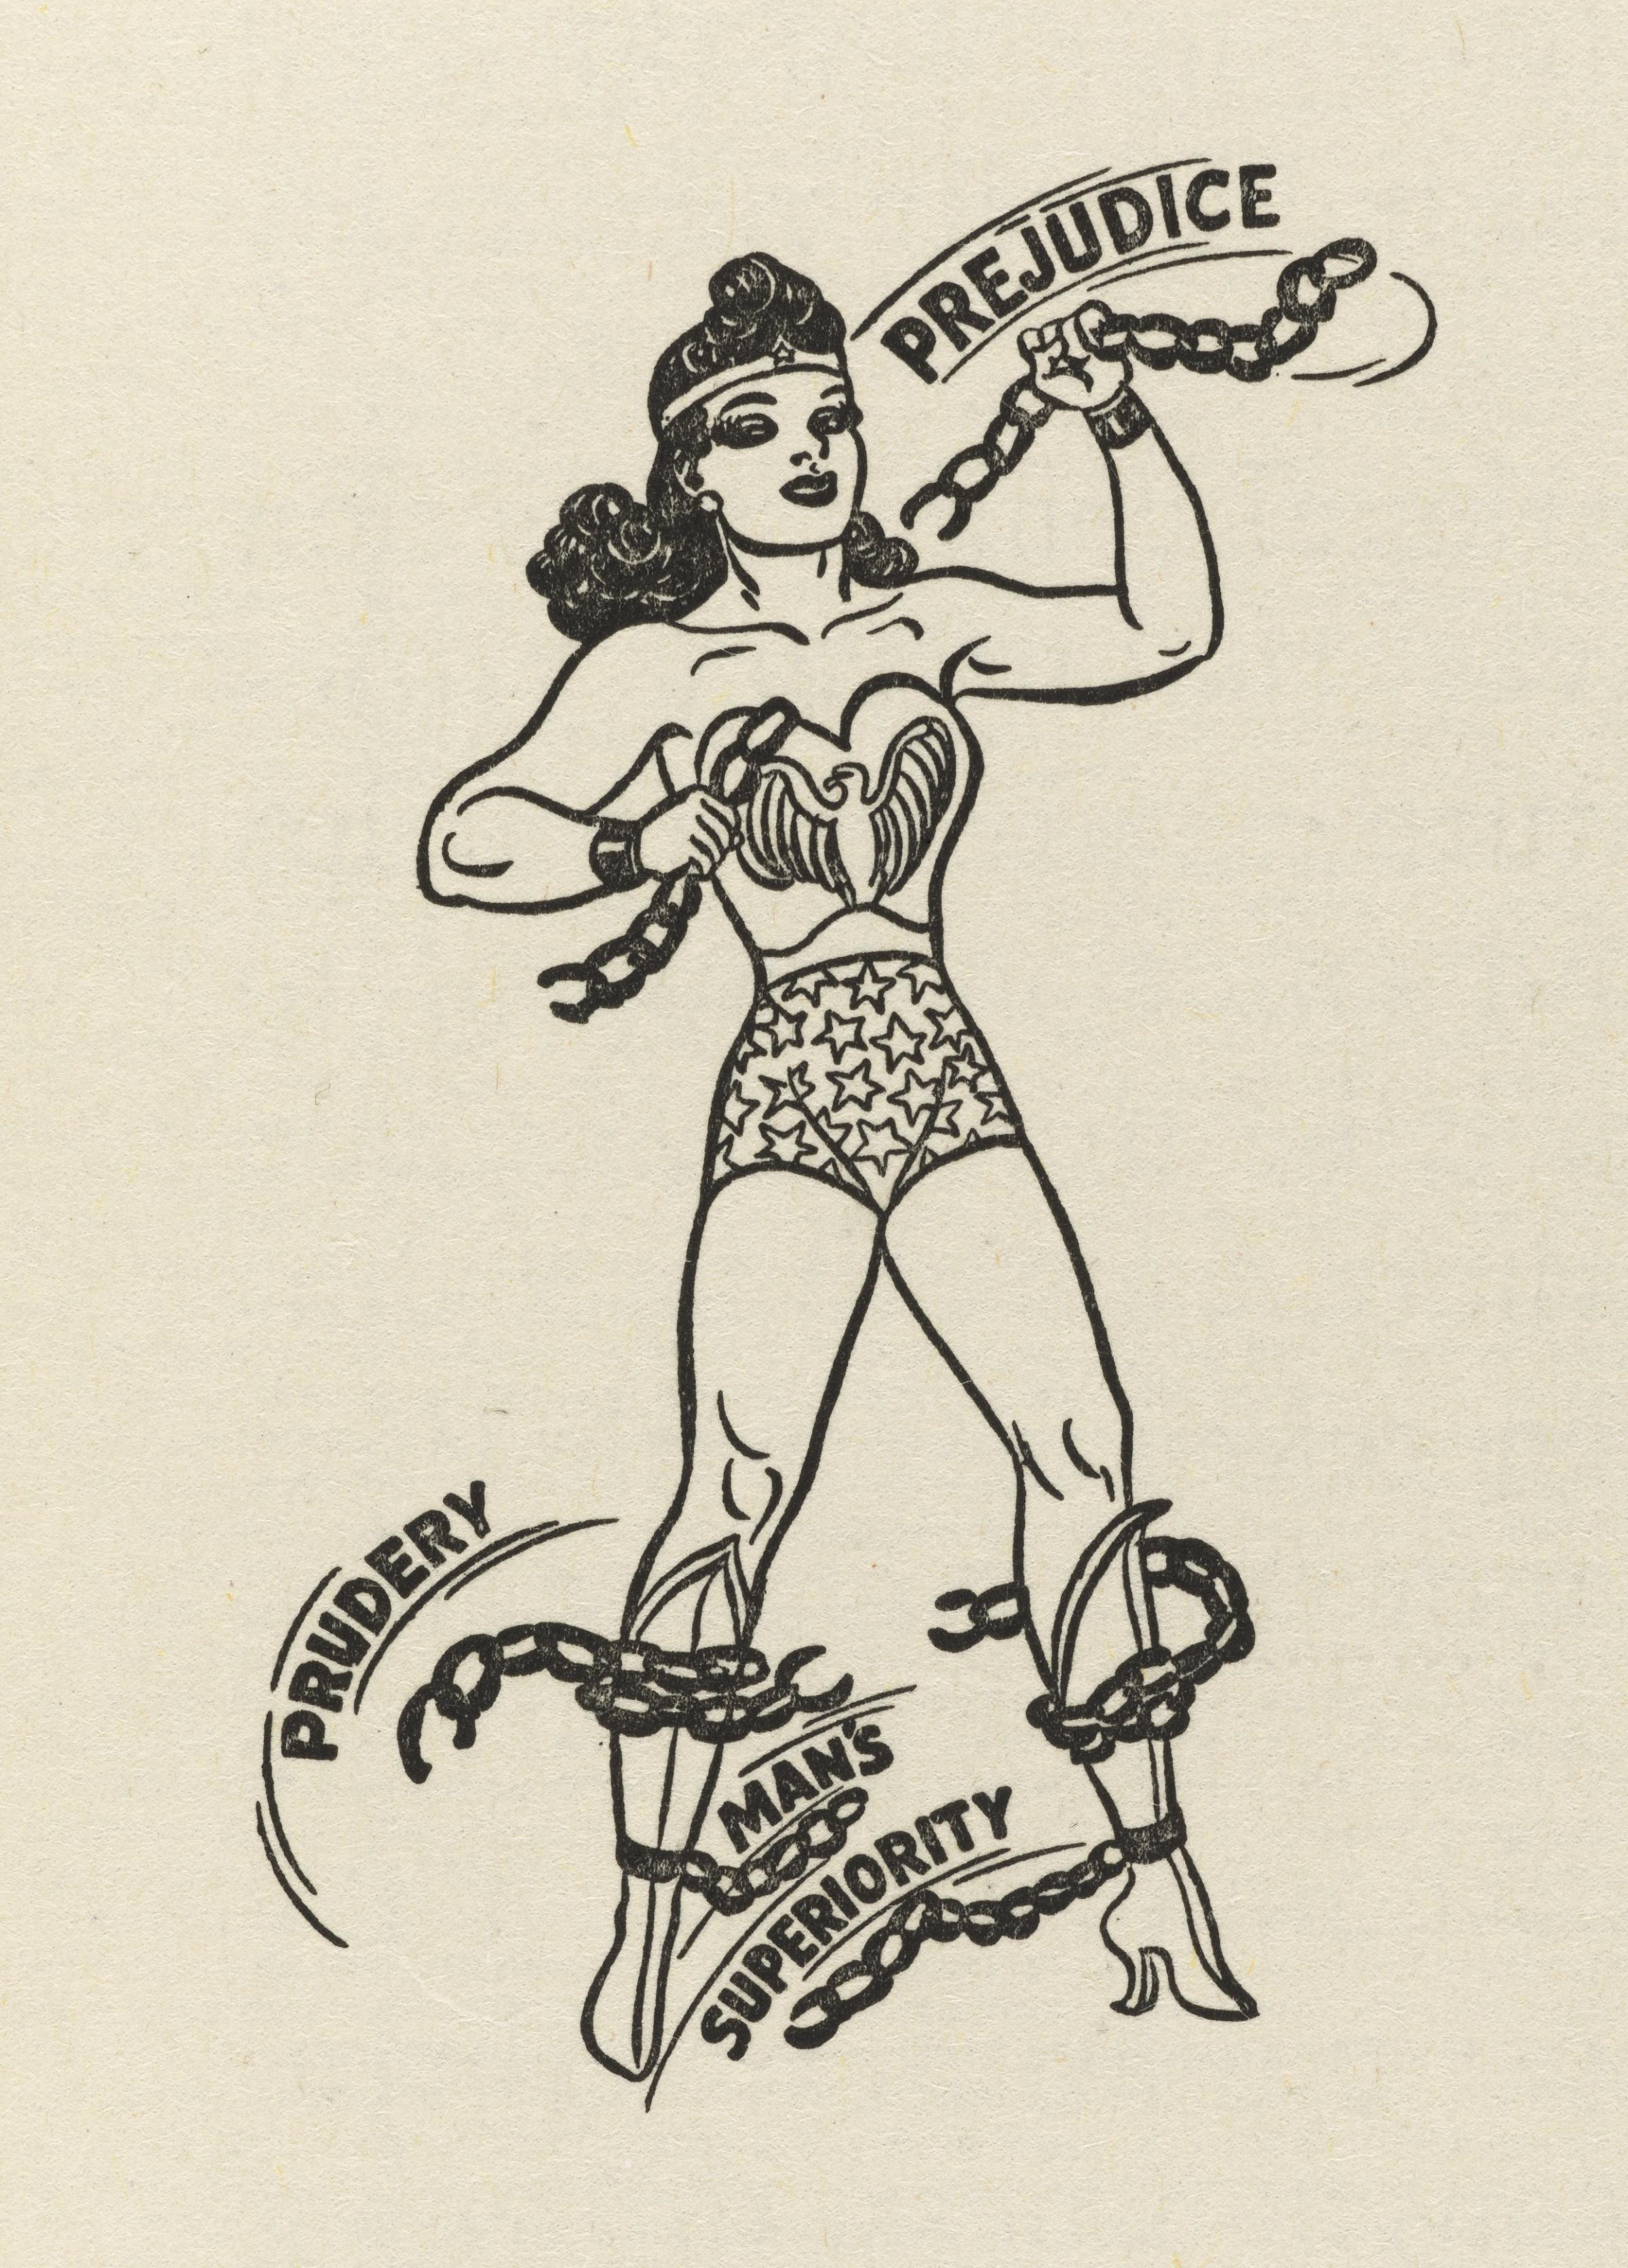 The character of Wonder Woman, although not created until 1941, was co-opted for this retro cartoon.